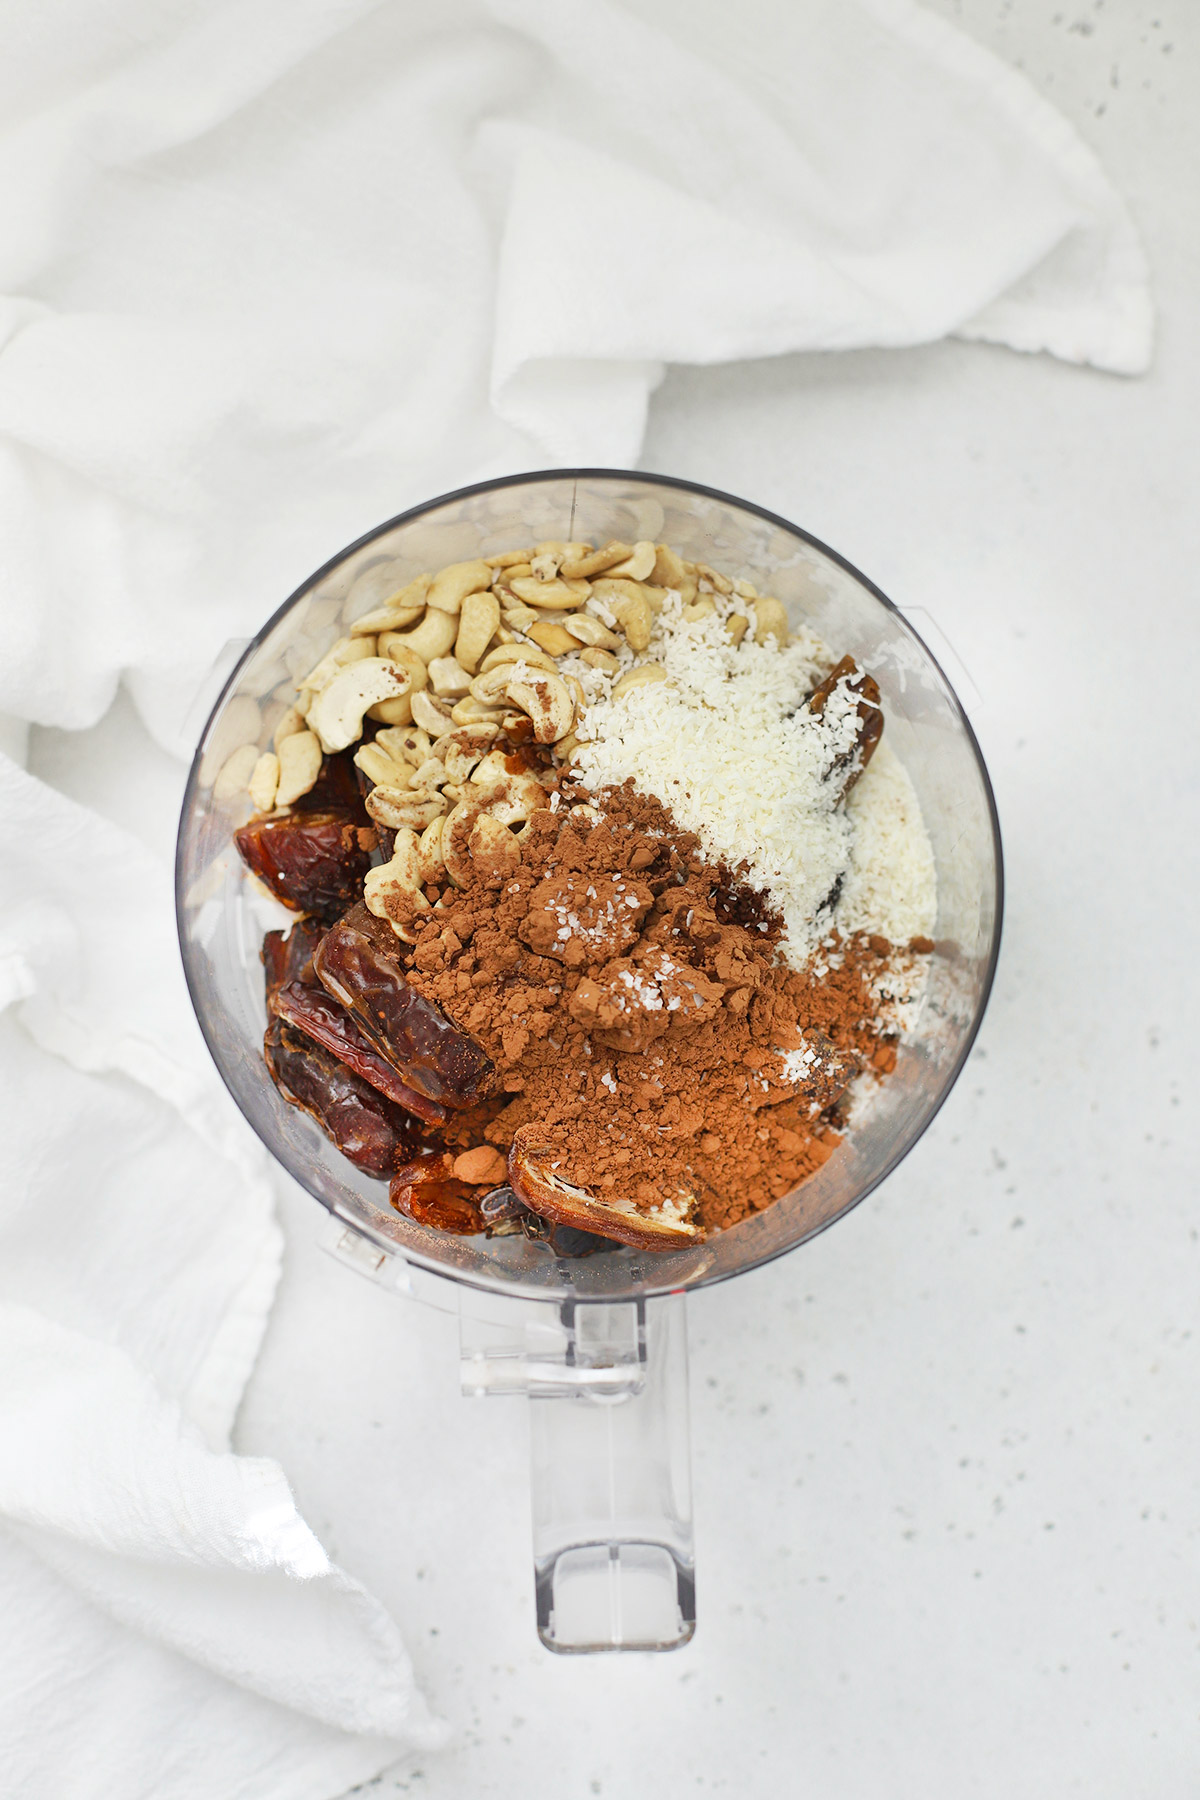 Overhead view of a food processor with ingredients for mint chocolate energy bites on a white background